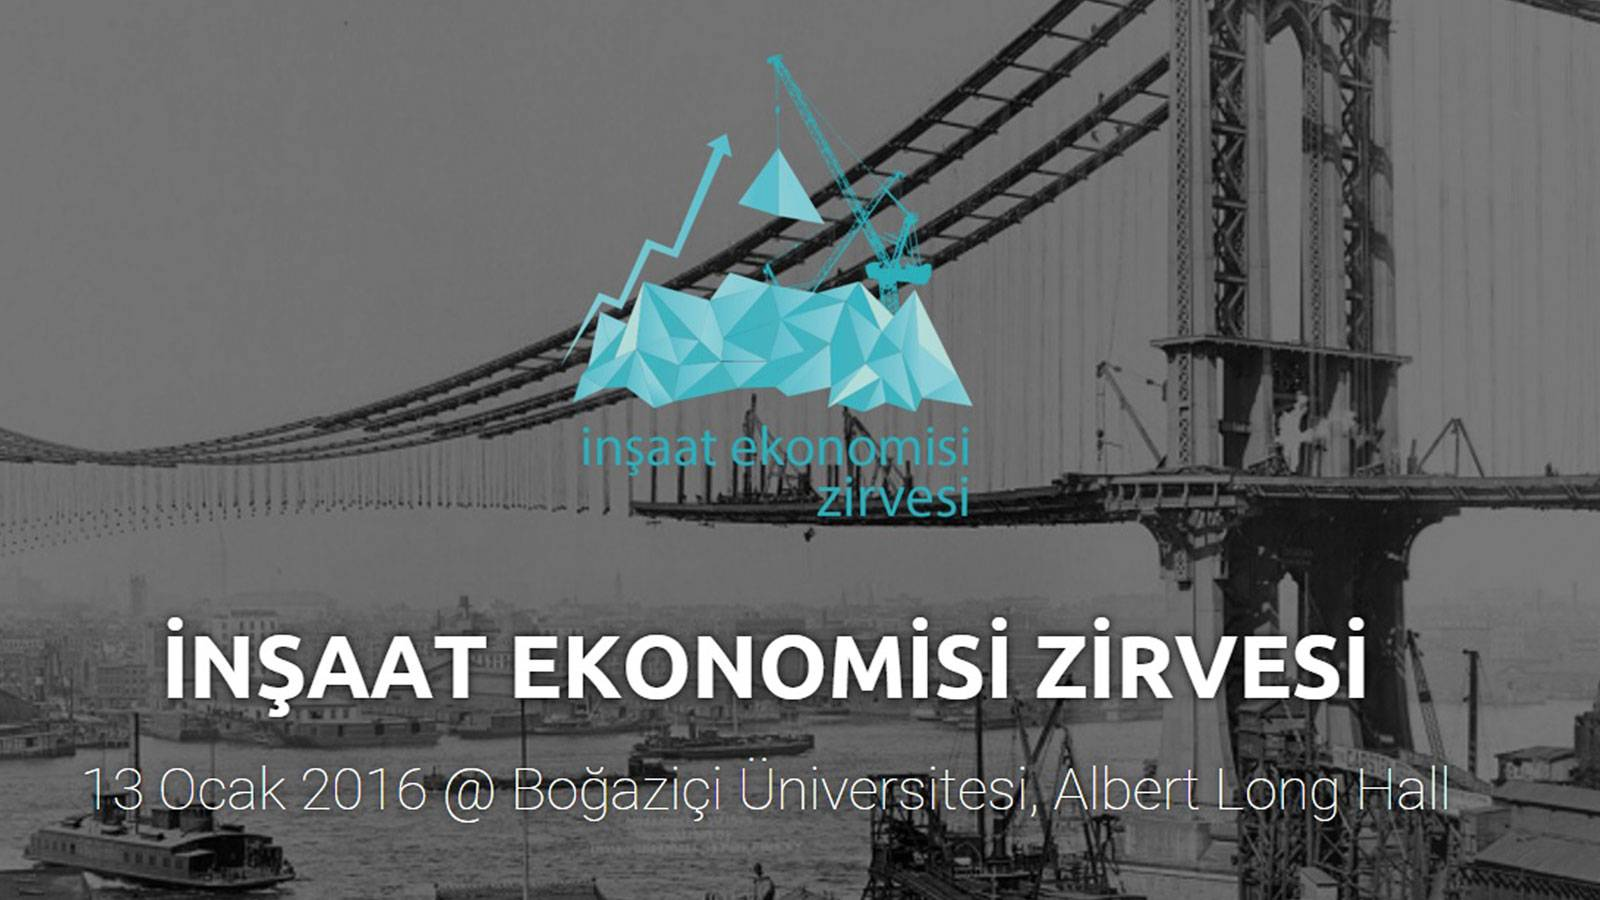 11.01.2016 Bogazici University-Construction Economy Summit